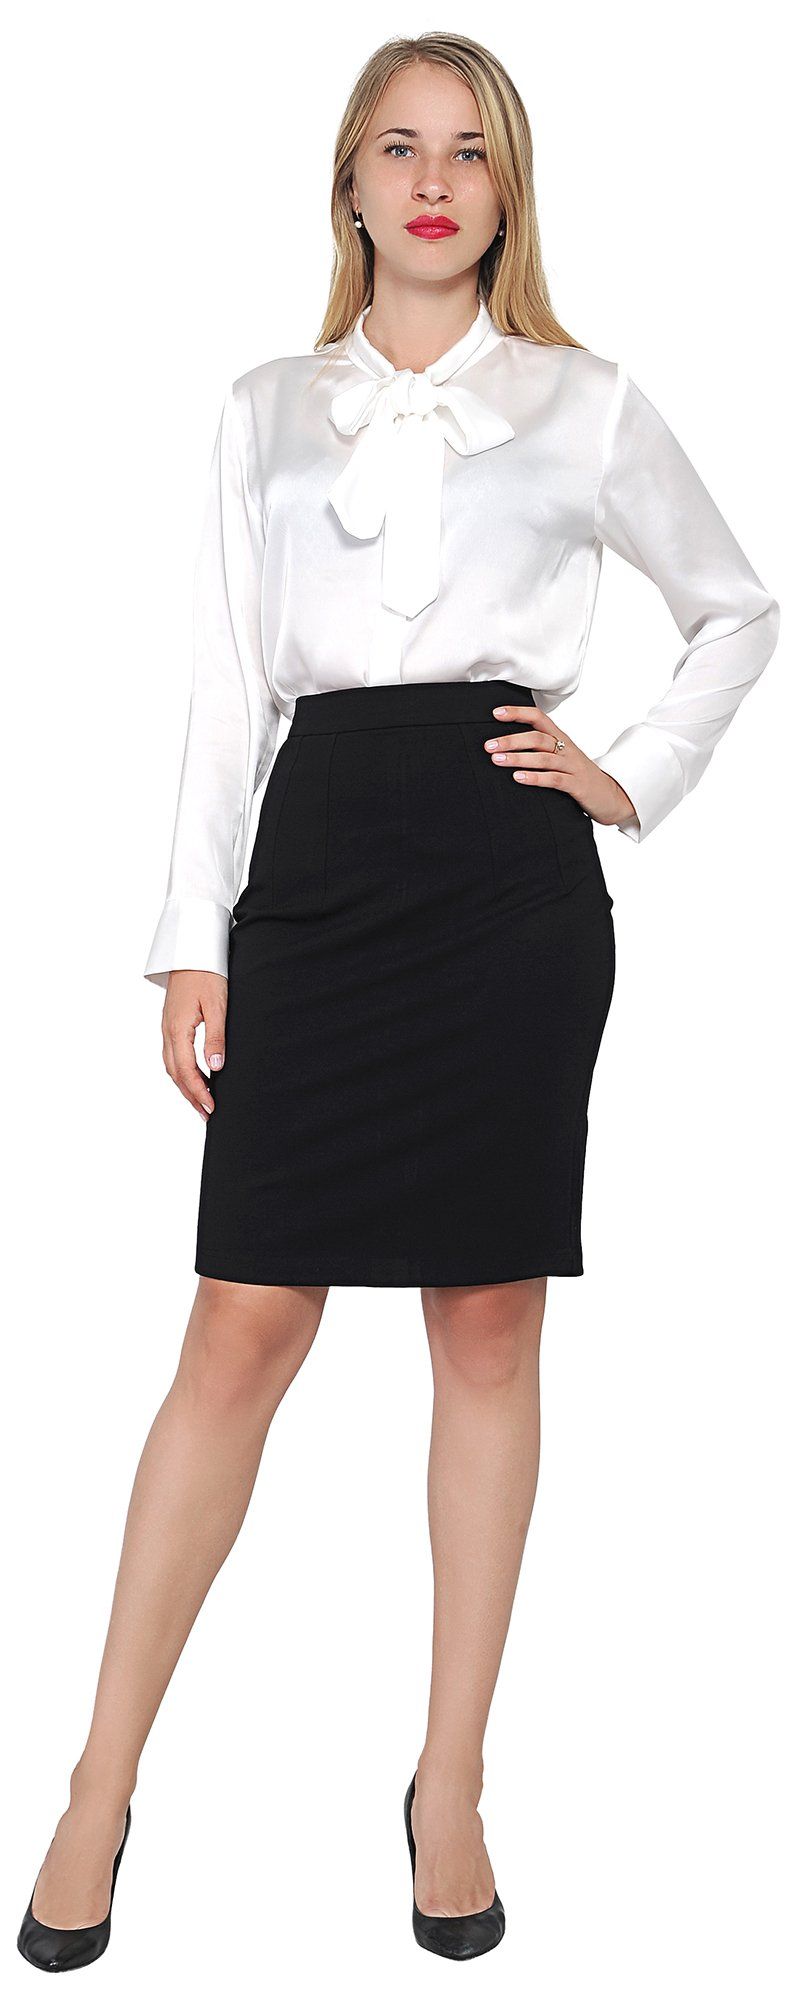 Marycrafts Women's Work Office Business Pencil Skirt M Black